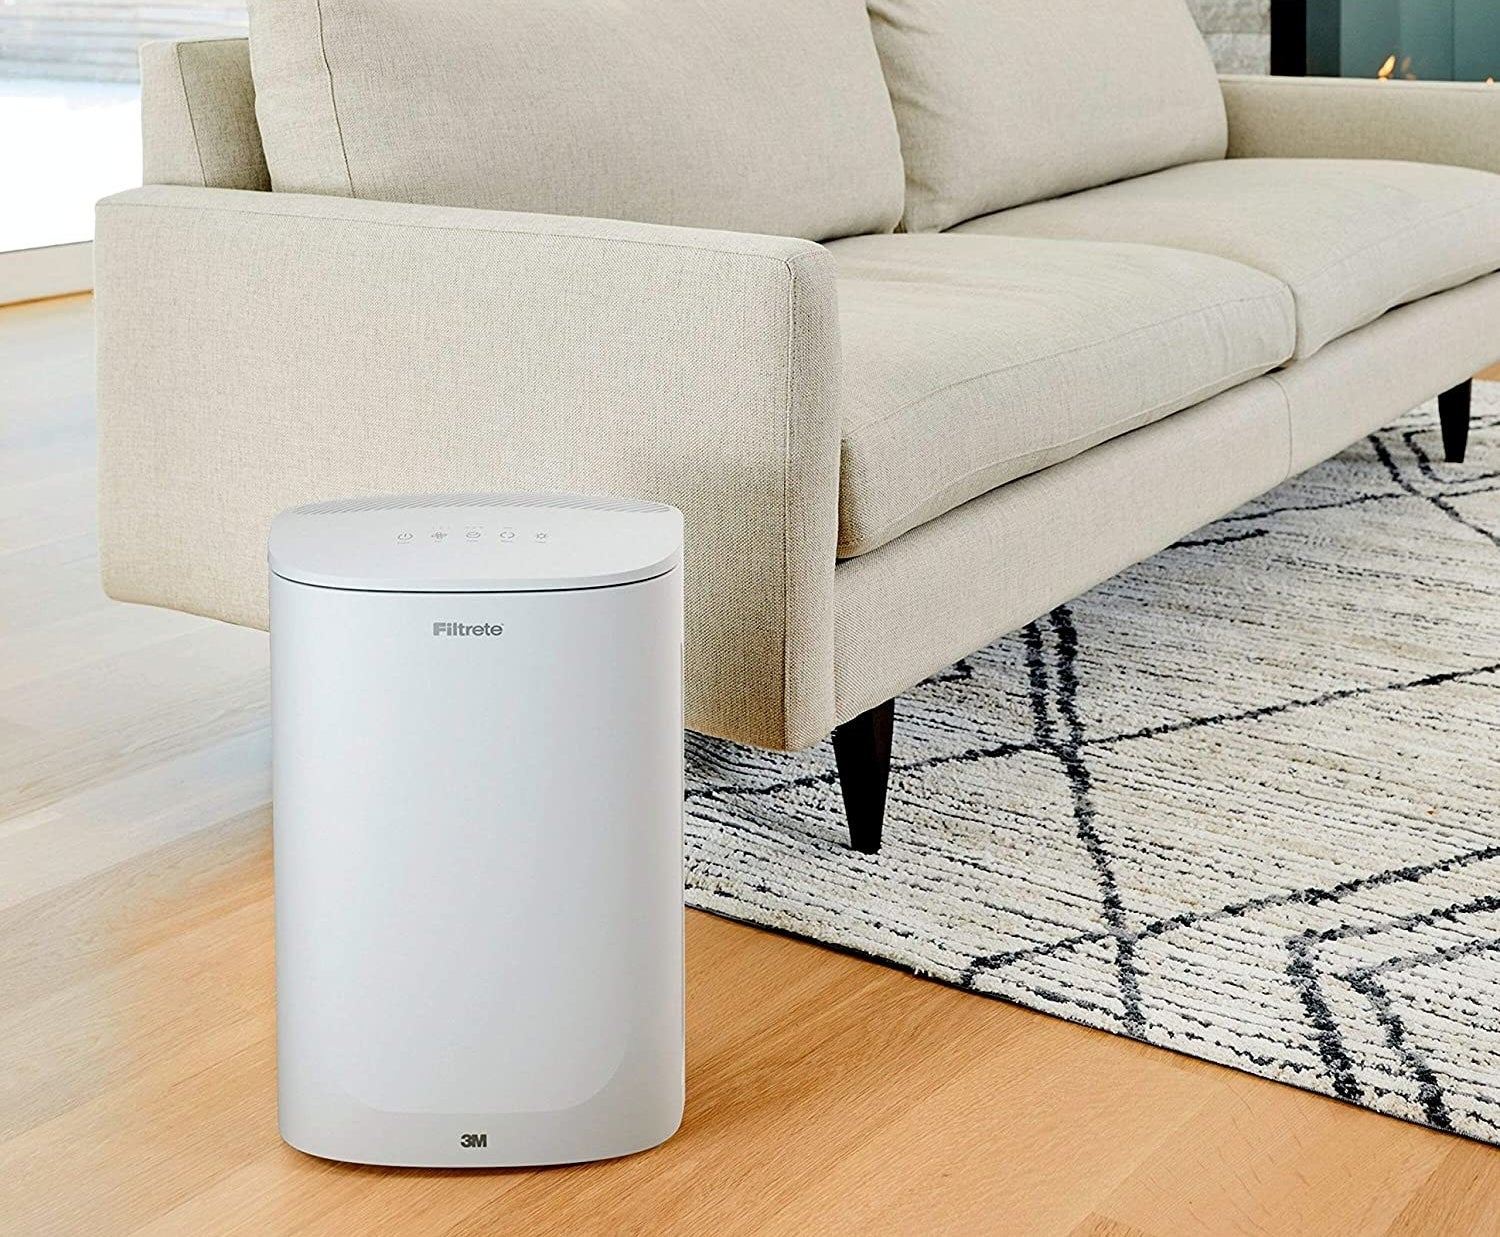 A white air purifier about the size of a of medium trash can next to a couch in a living room